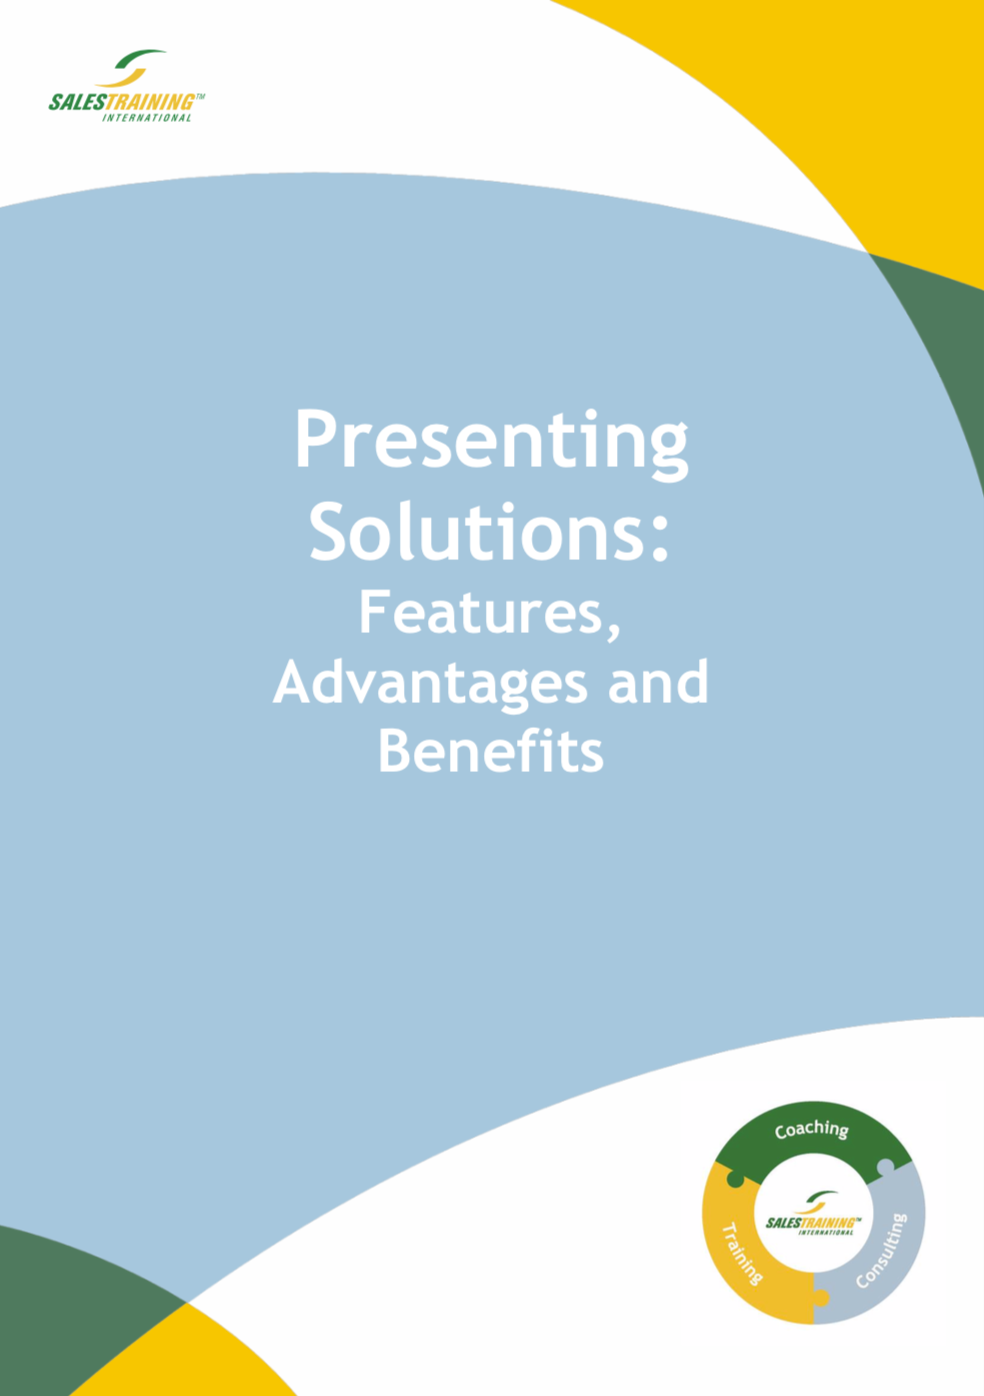 Presenting Solutions